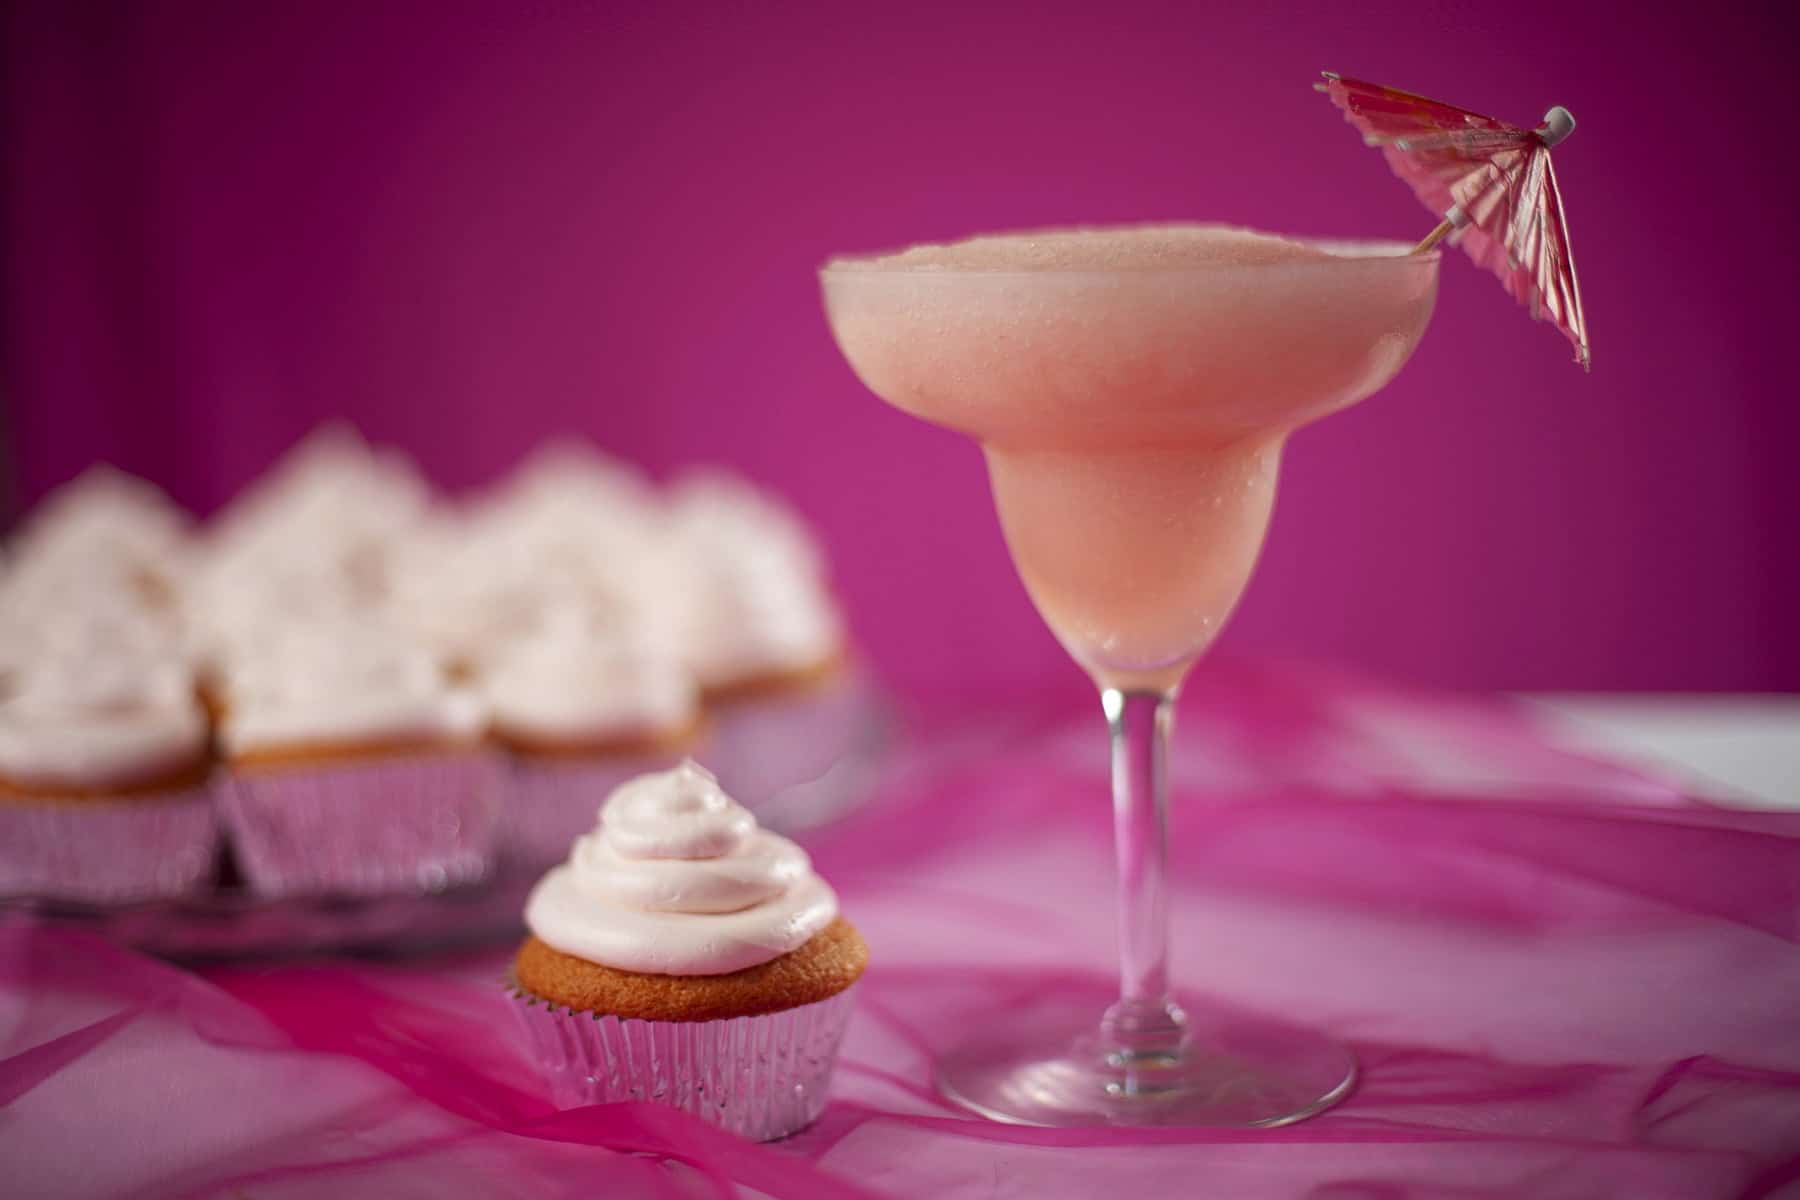 A tray of pink grapefruit daiquiri cupcakes - in silver liners, topped with pink frosting. There is a pink grapefruit daiquiri next to the cupcakes.